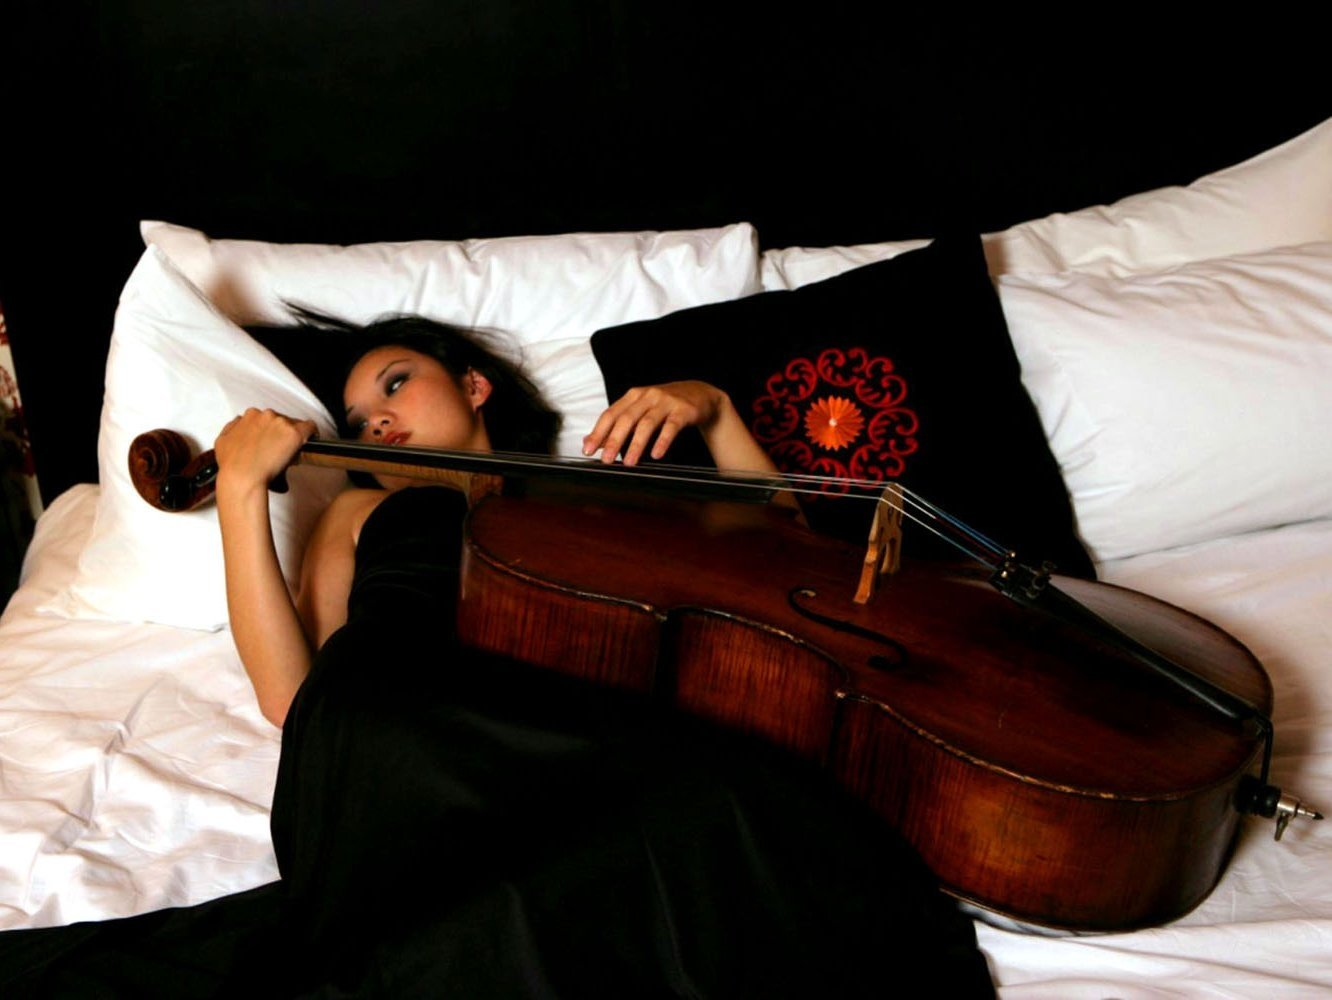 Cello Wallpaper Photo 22287 Hd Pictures: Cello Wallpaper And Background Image